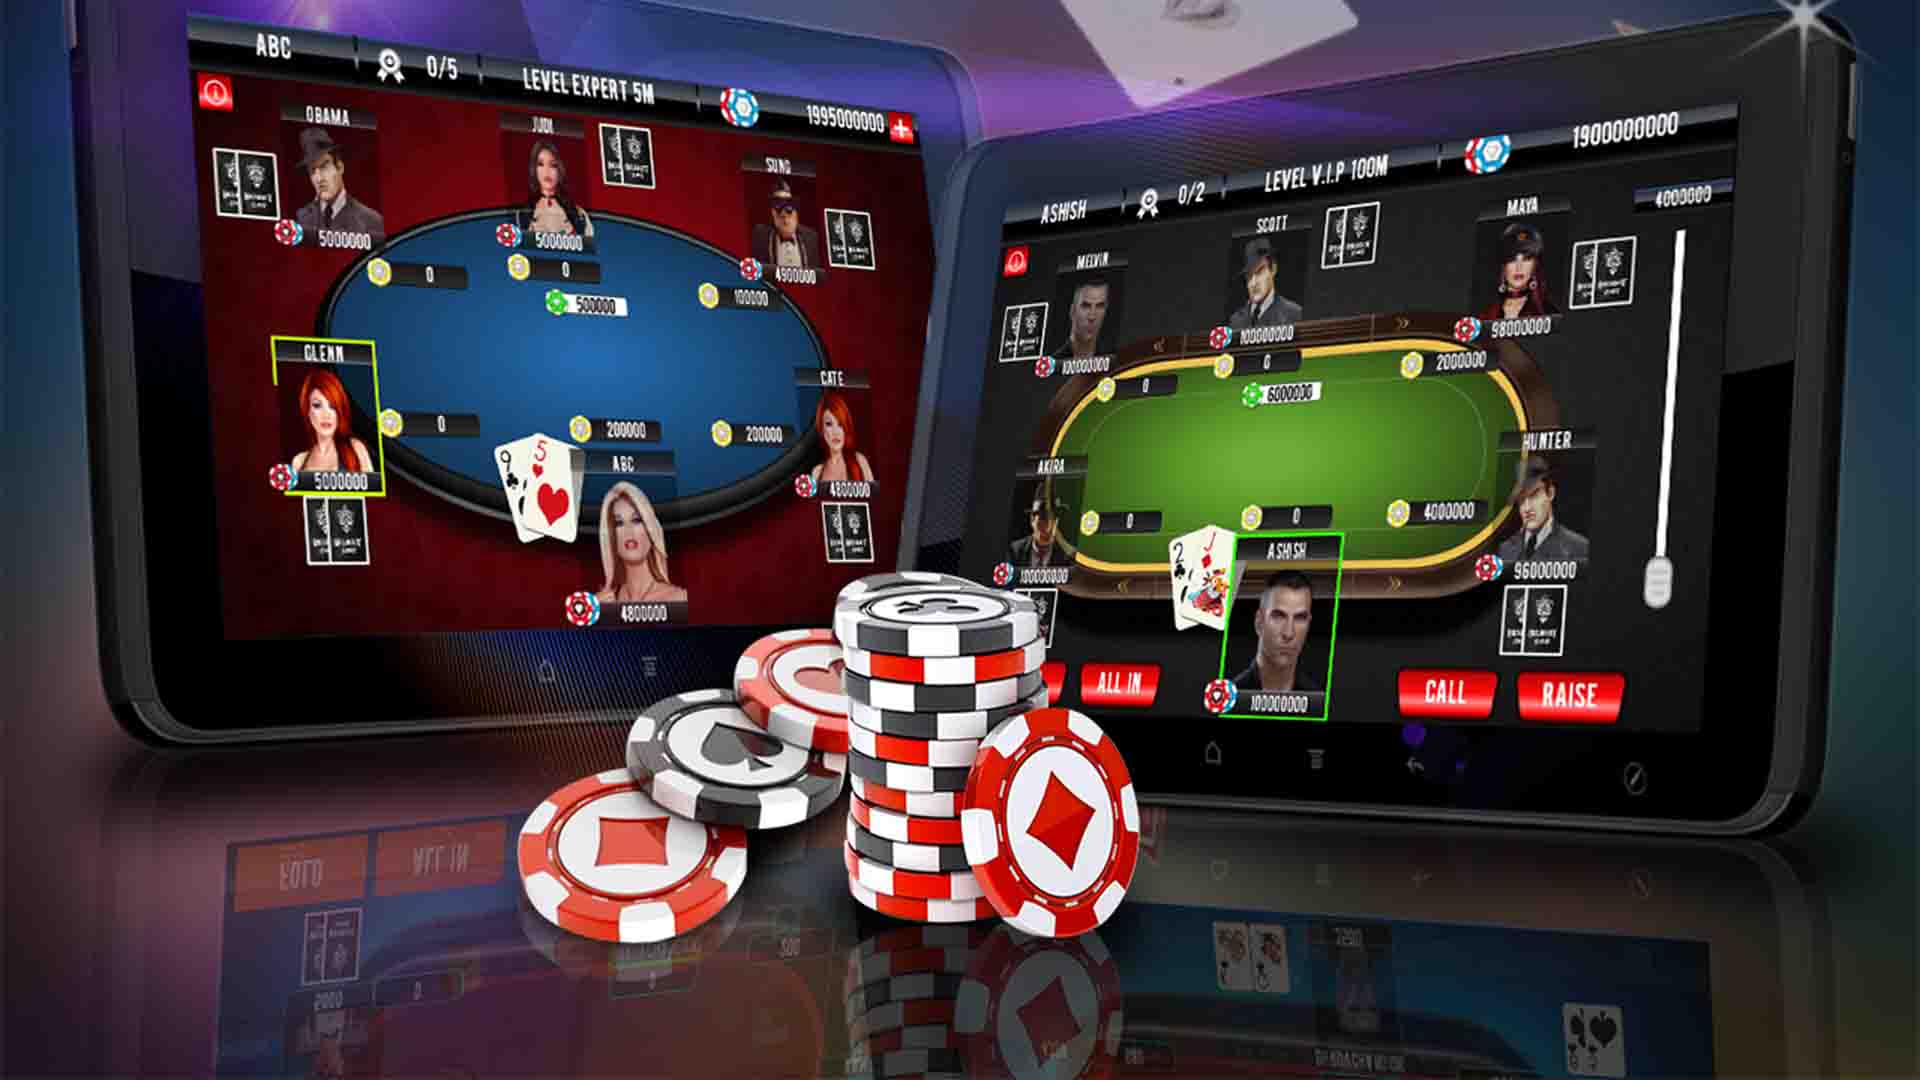 Earn Money in Online Games With These Easy Tips